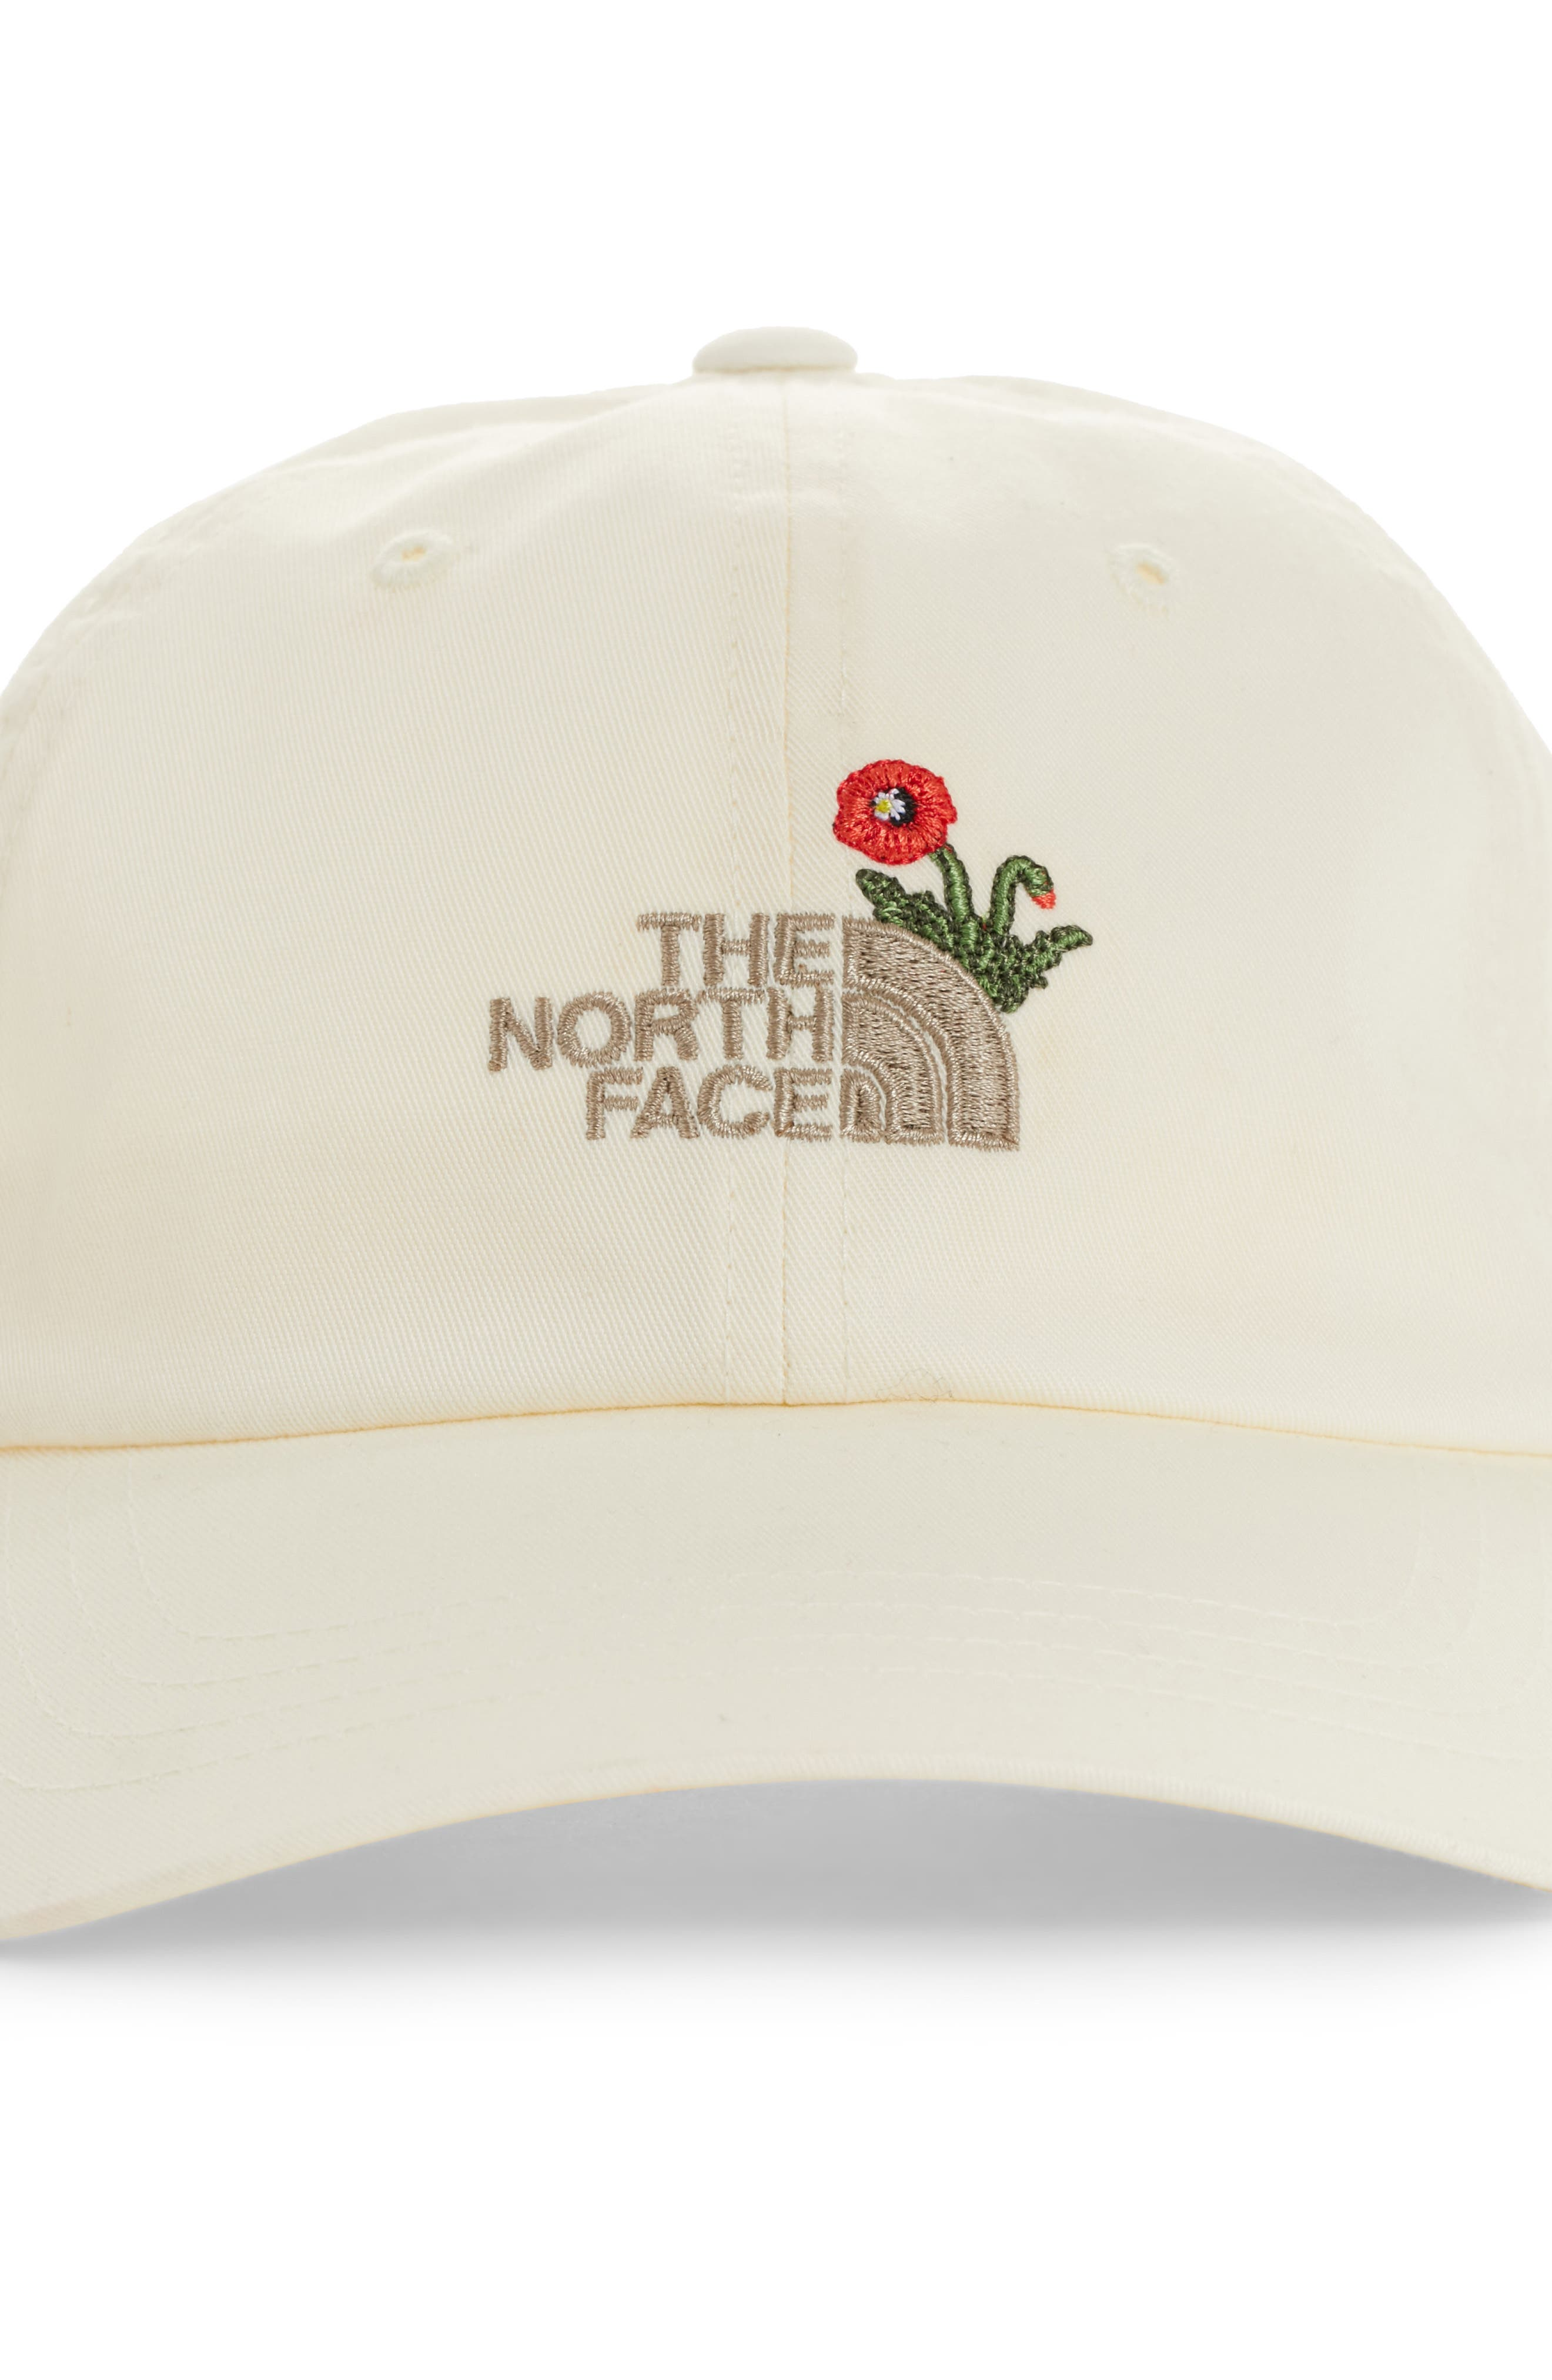 Norm Poppy Embroidered Adjustable Cap,                             Alternate thumbnail 5, color,